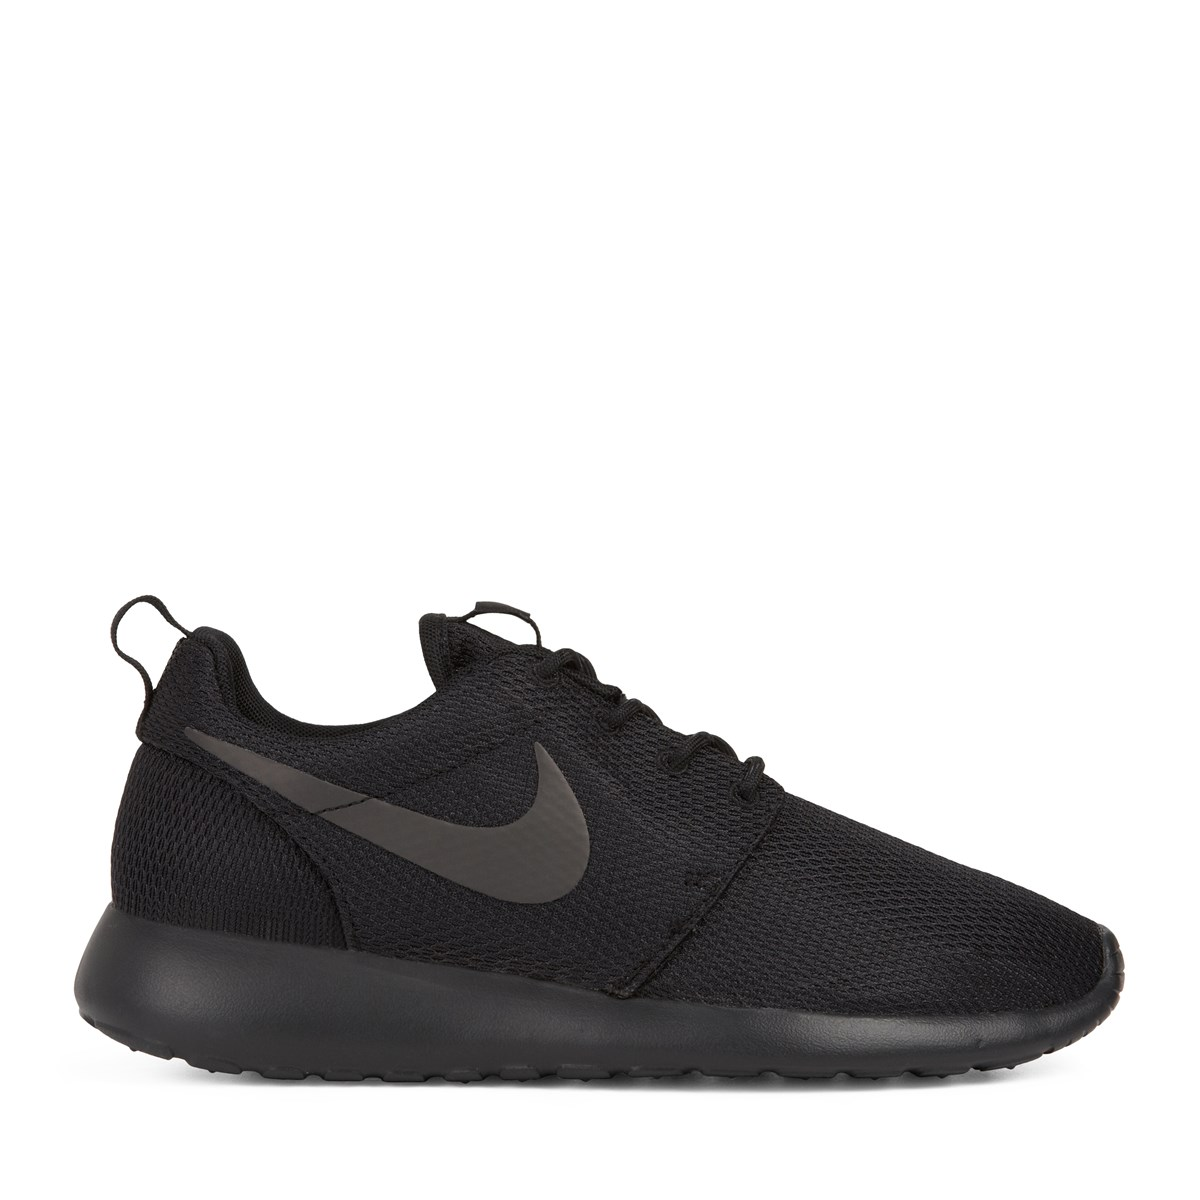 eabf1db0ff16 Women s Roshe One All Black Sneaker